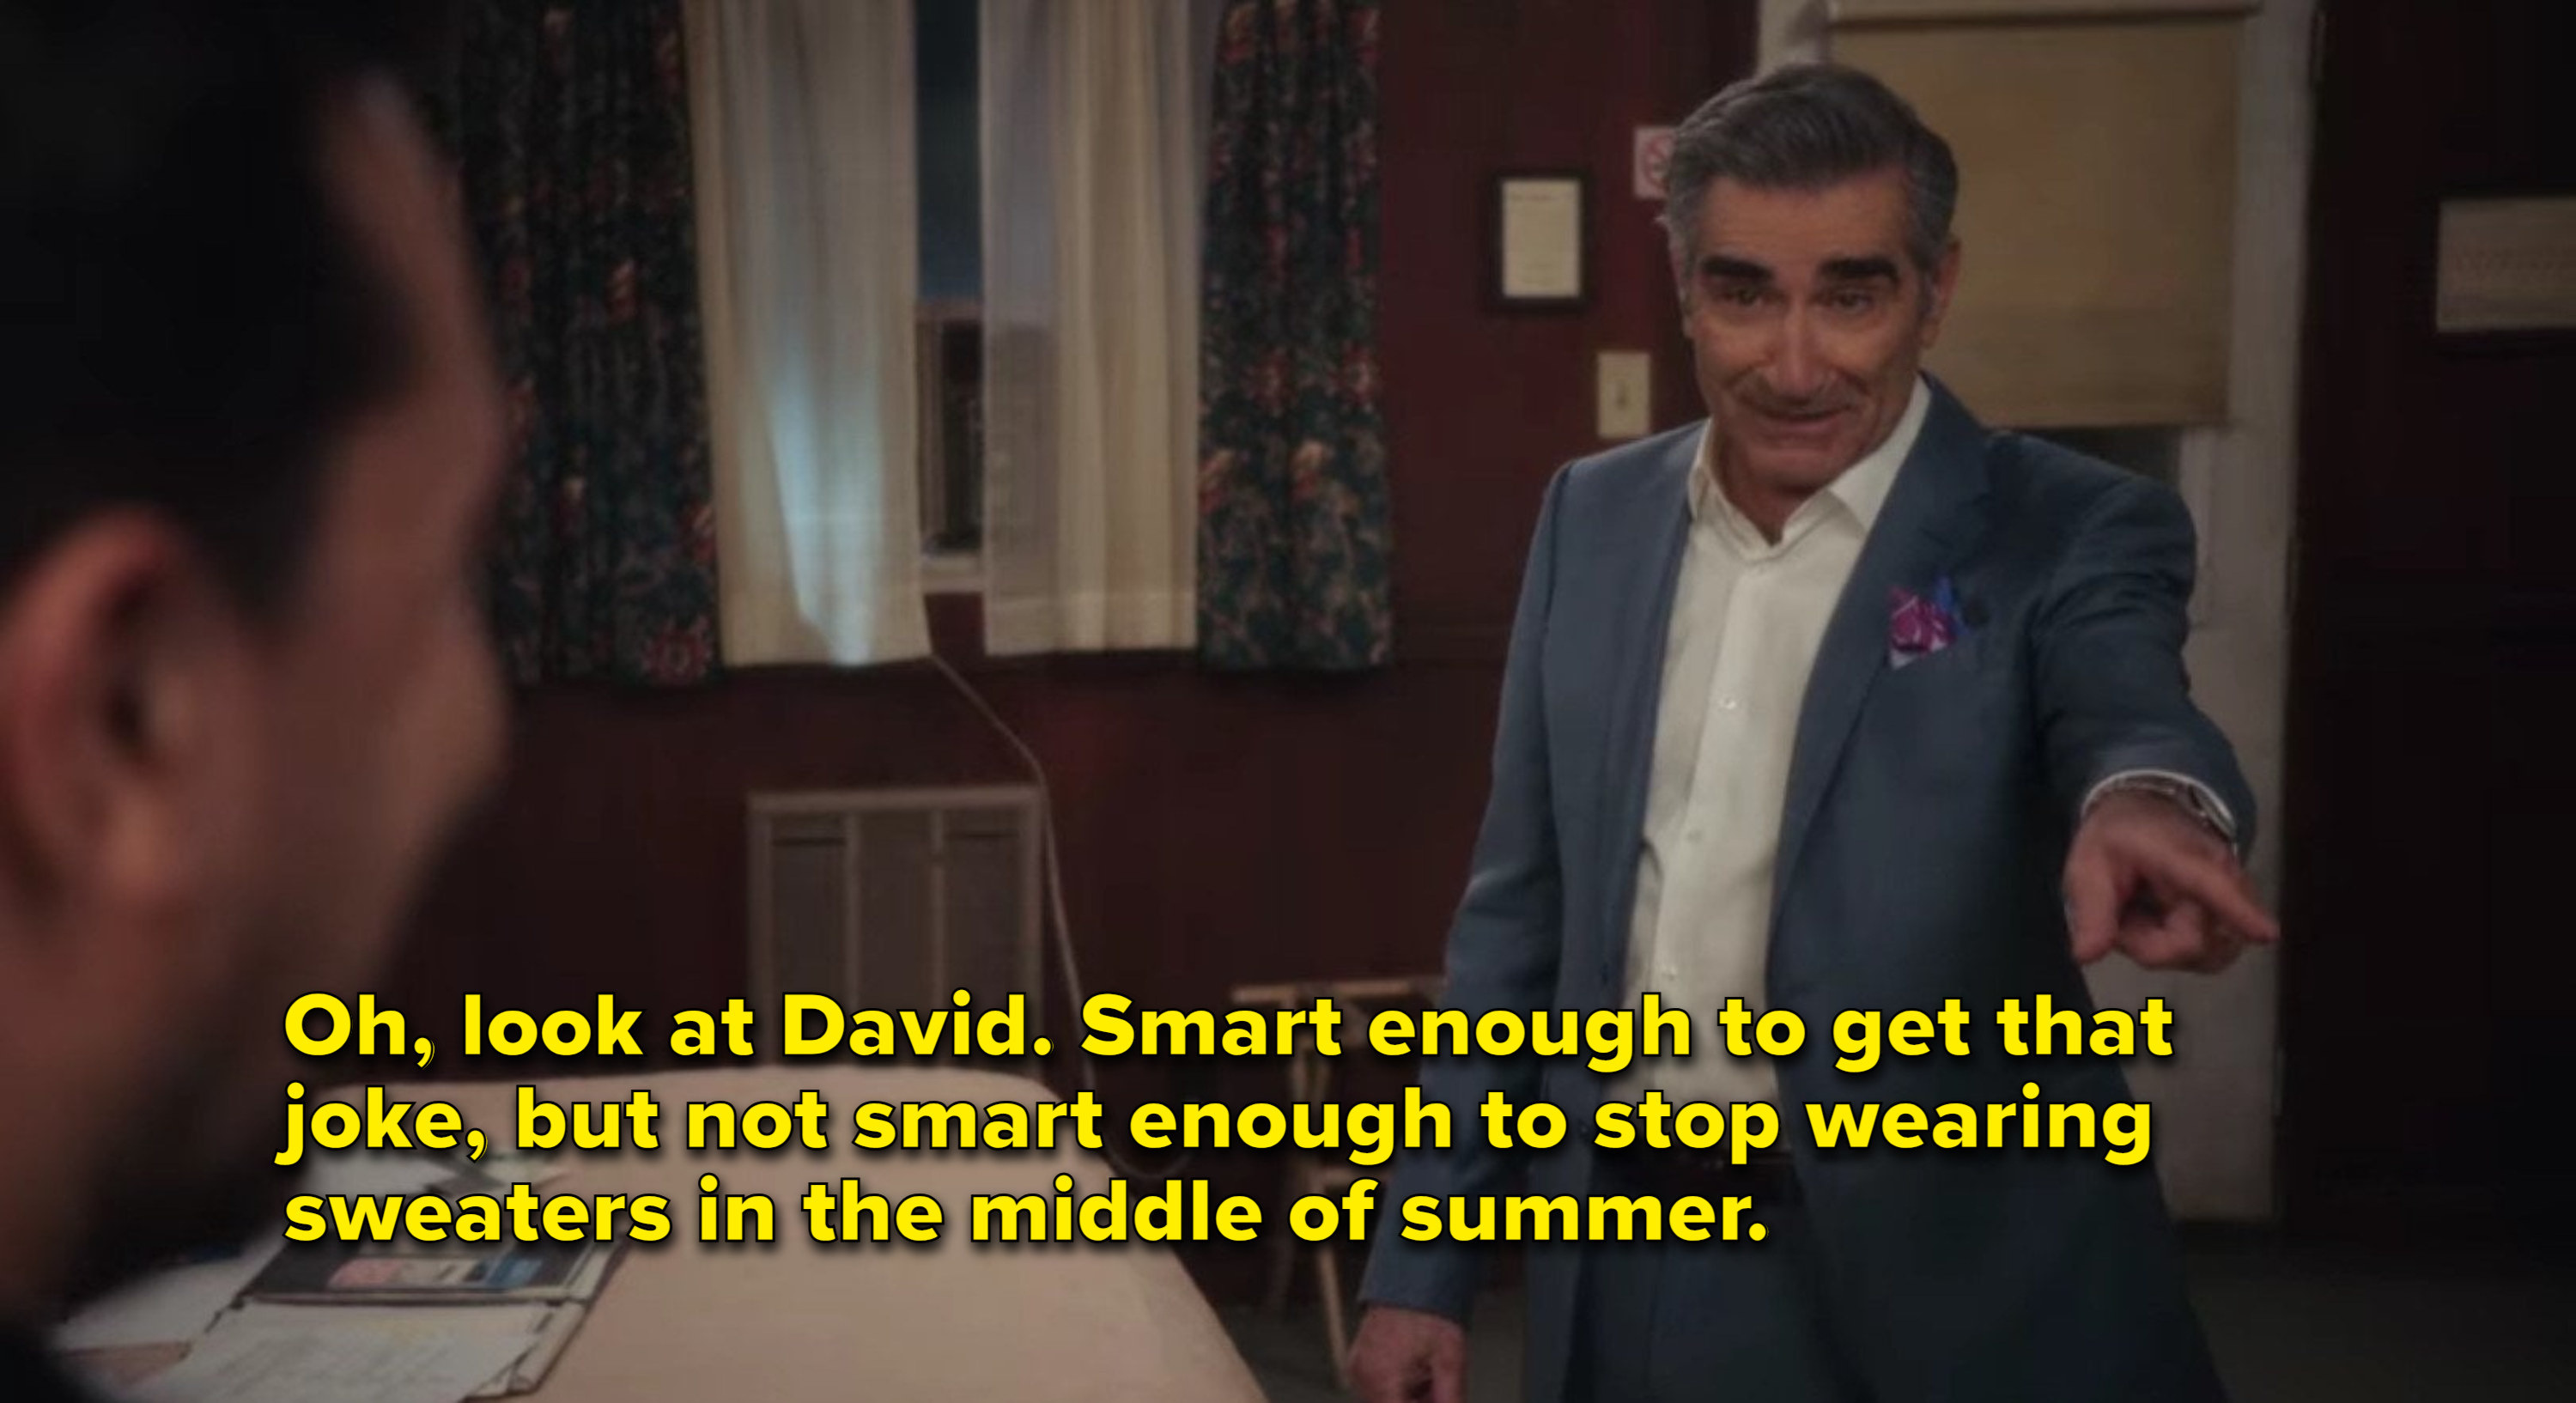 Johnny says David is smart enough to get a joke, but not enough to stop wearing sweaters in summer